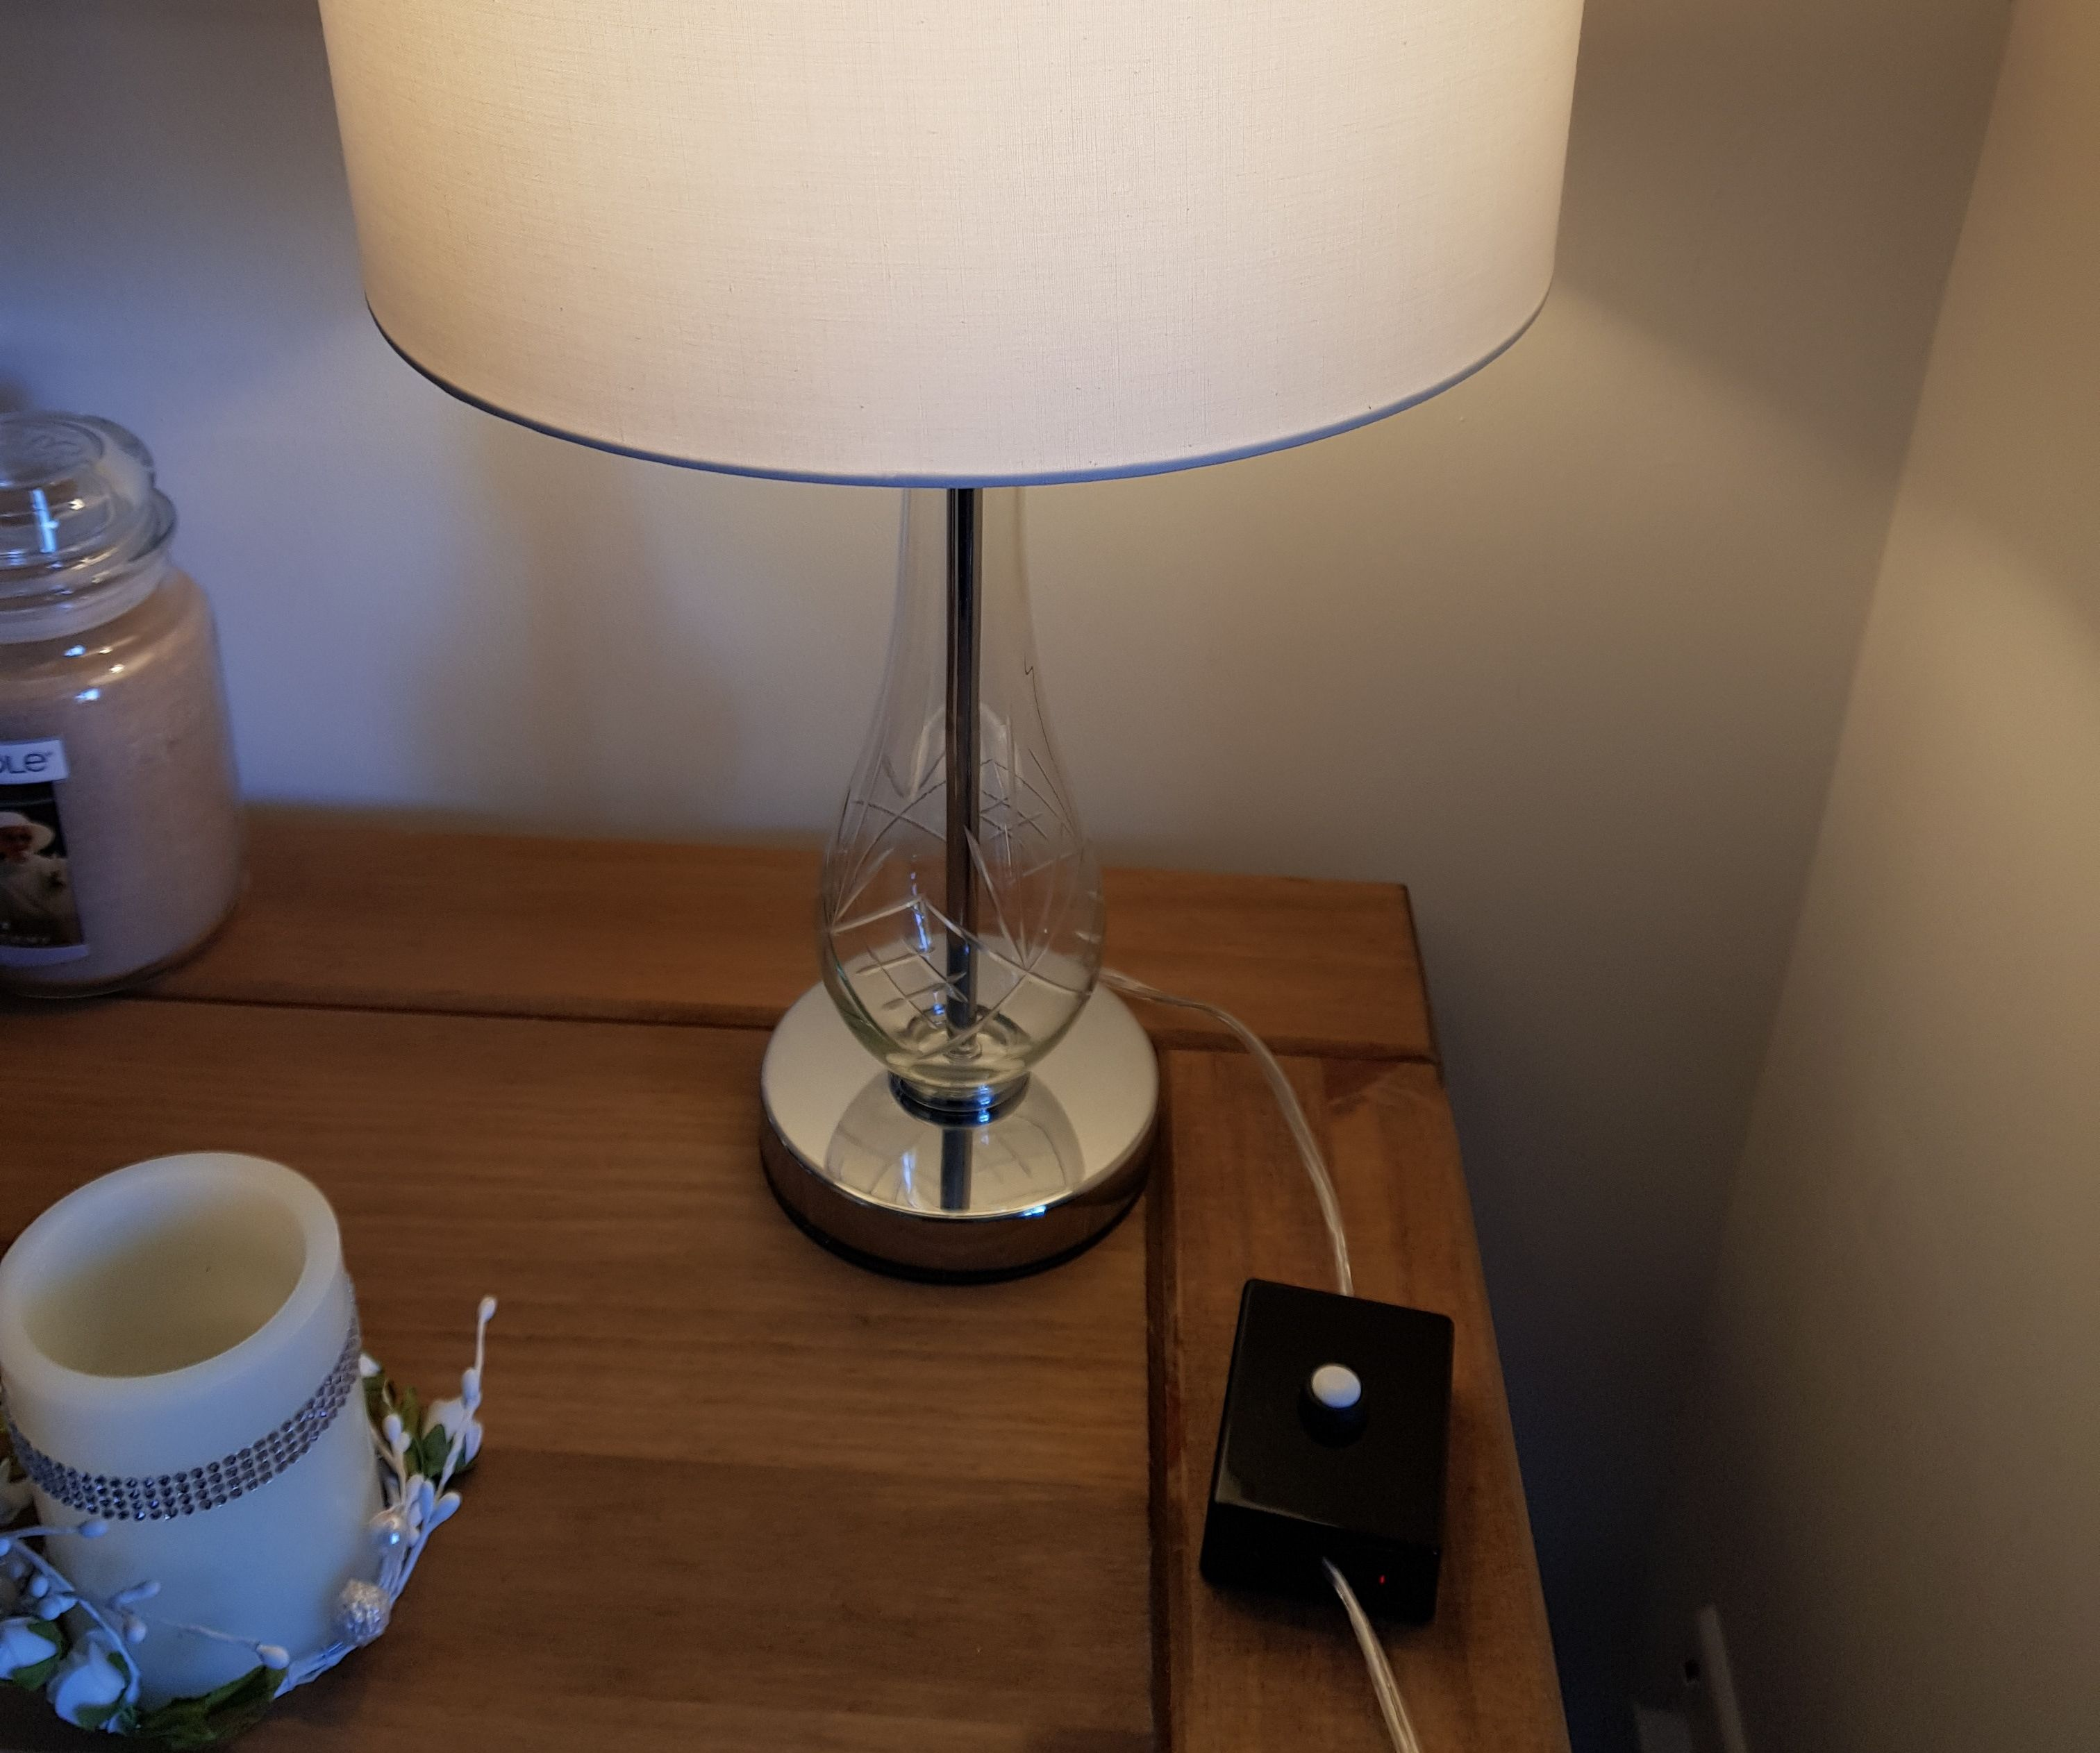 Alexa and Switch Operated Lamp